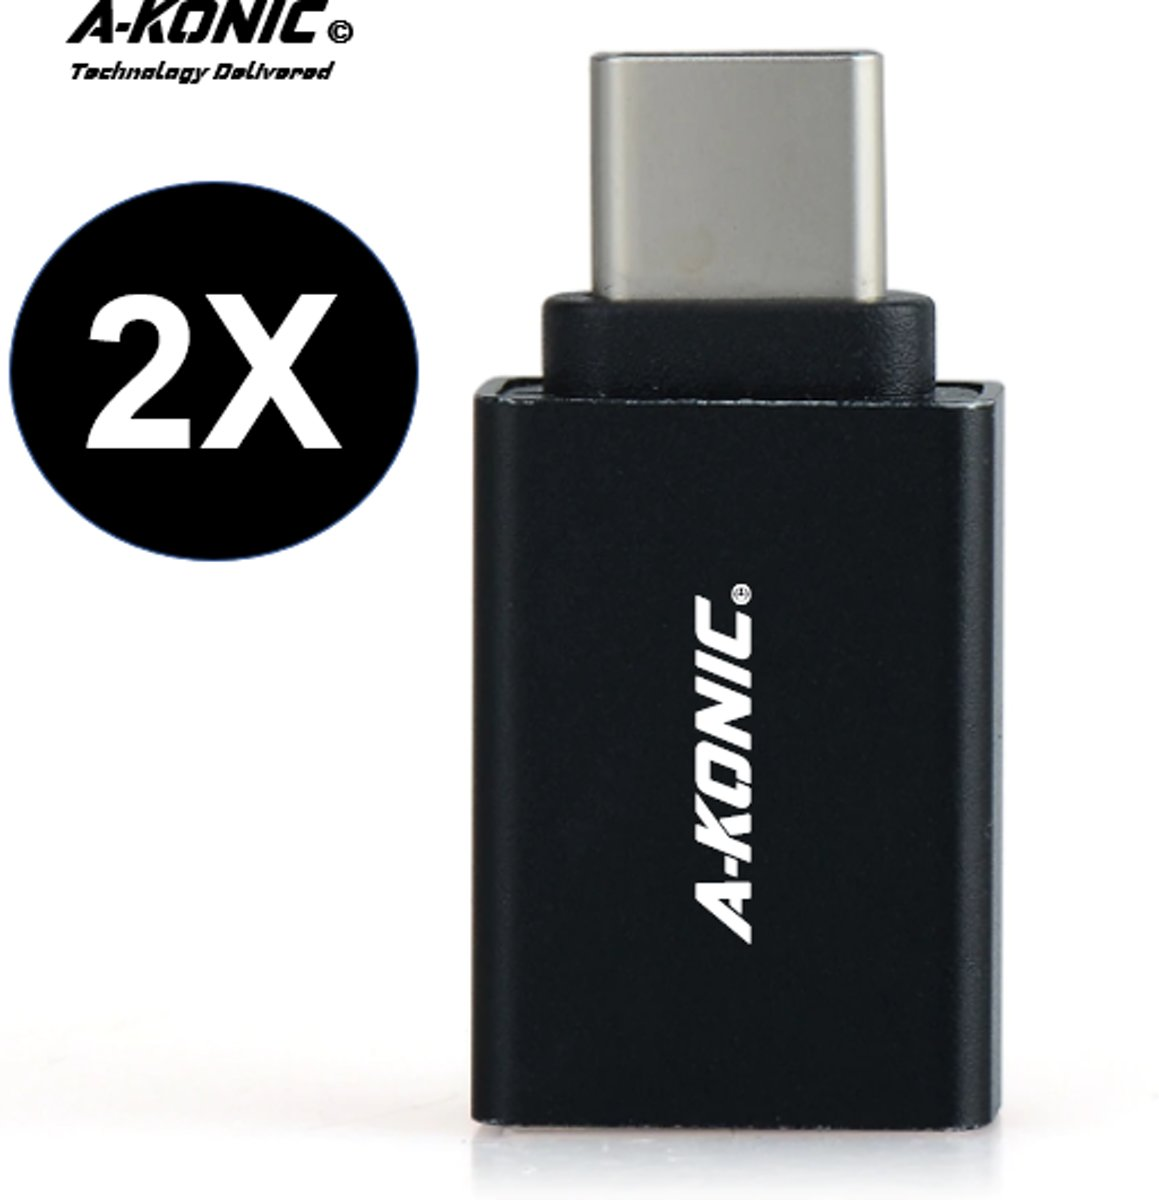 A-Konic© set van 2 USB-C naar USB-A adapter OTG Converter USB 3.0 | USB C to USB HUB | geschikt voor Apple MacBook / iMac / Ultrabook / Surface Book 2